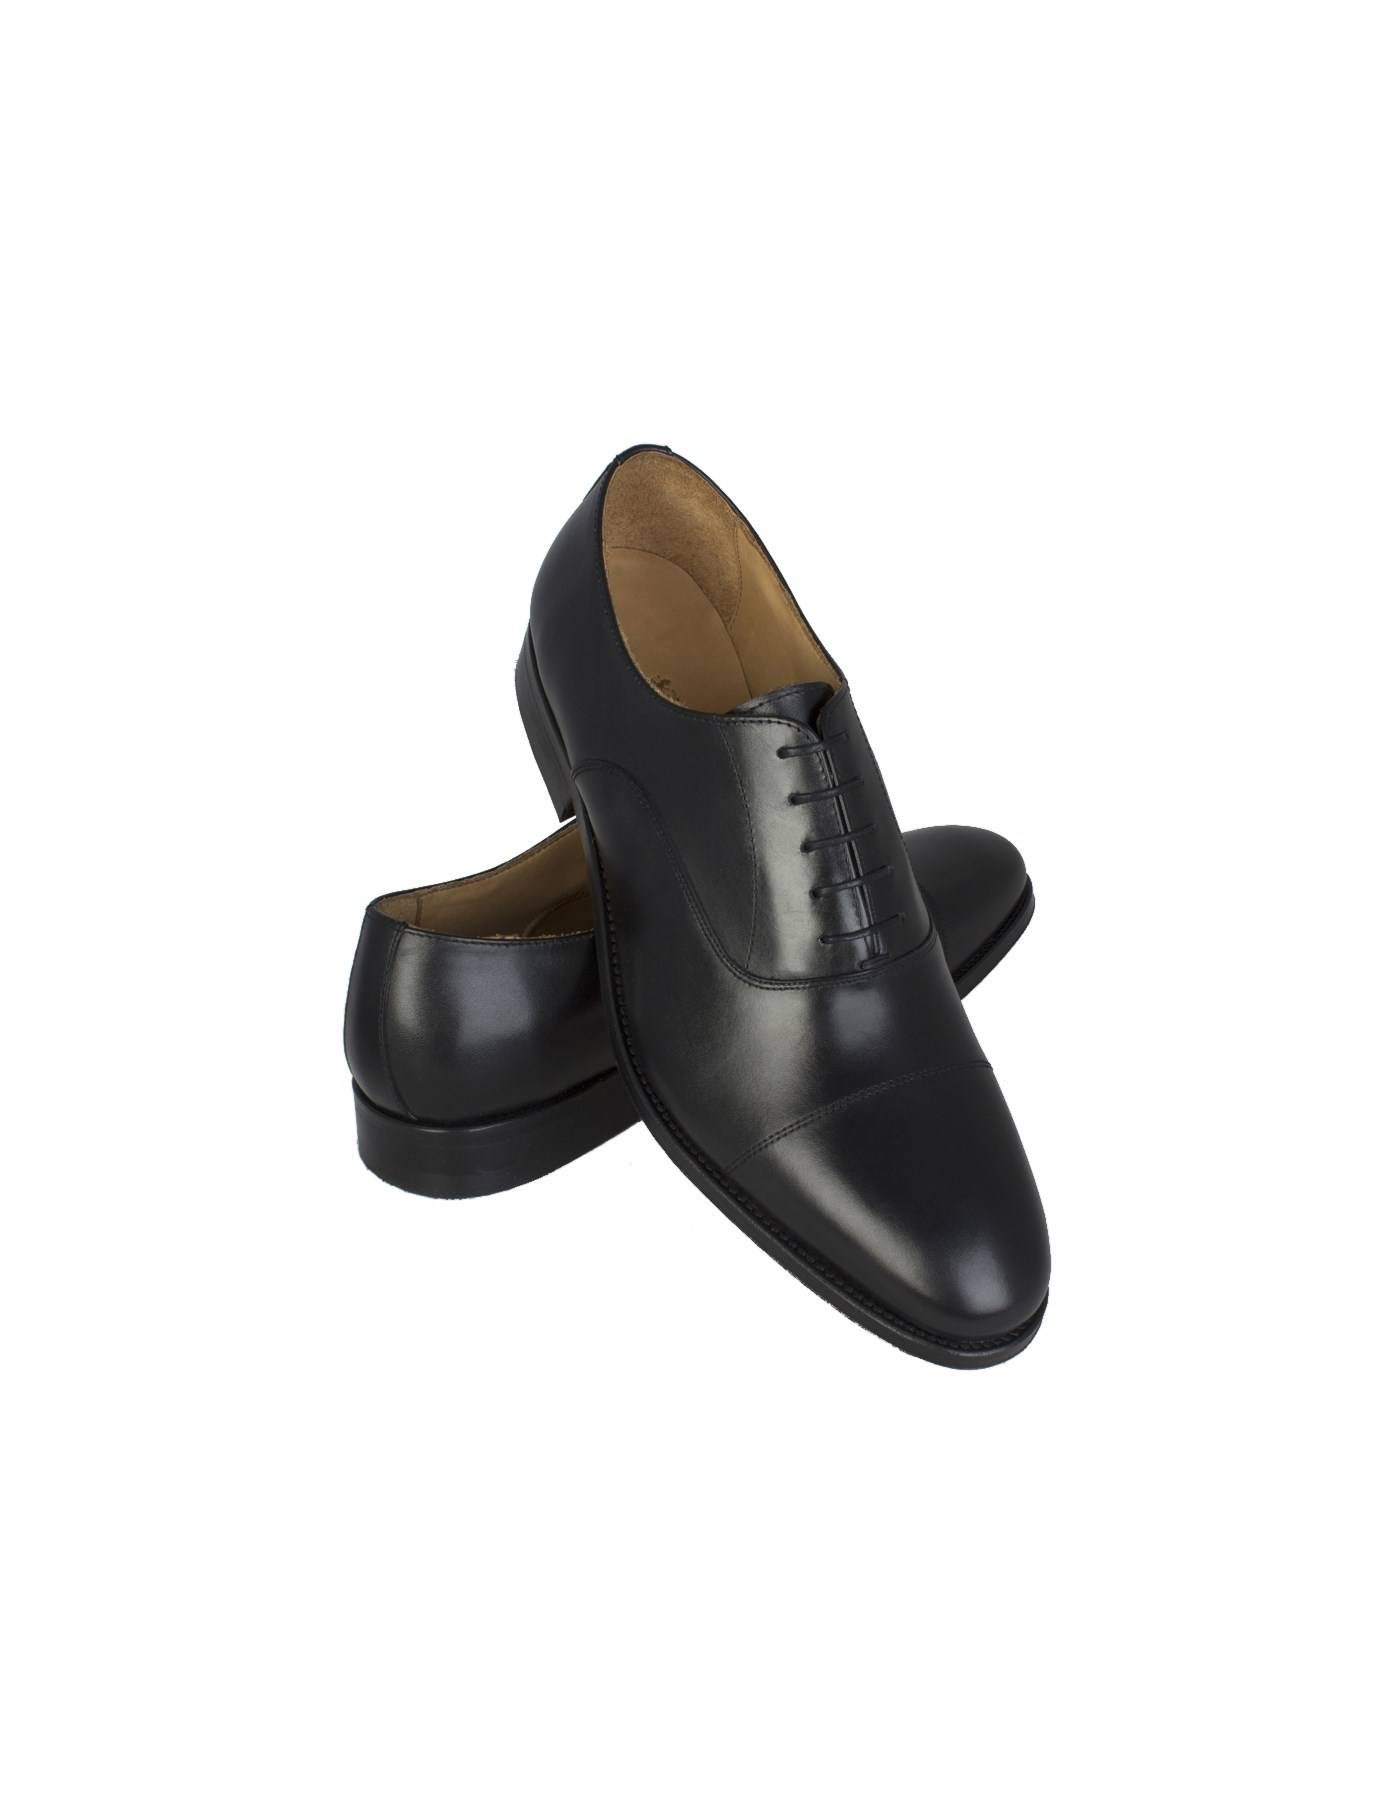 Hawes & Curtis Men's Leather Oxford Shoes in Black Size 9.5 Hawes & Curtis